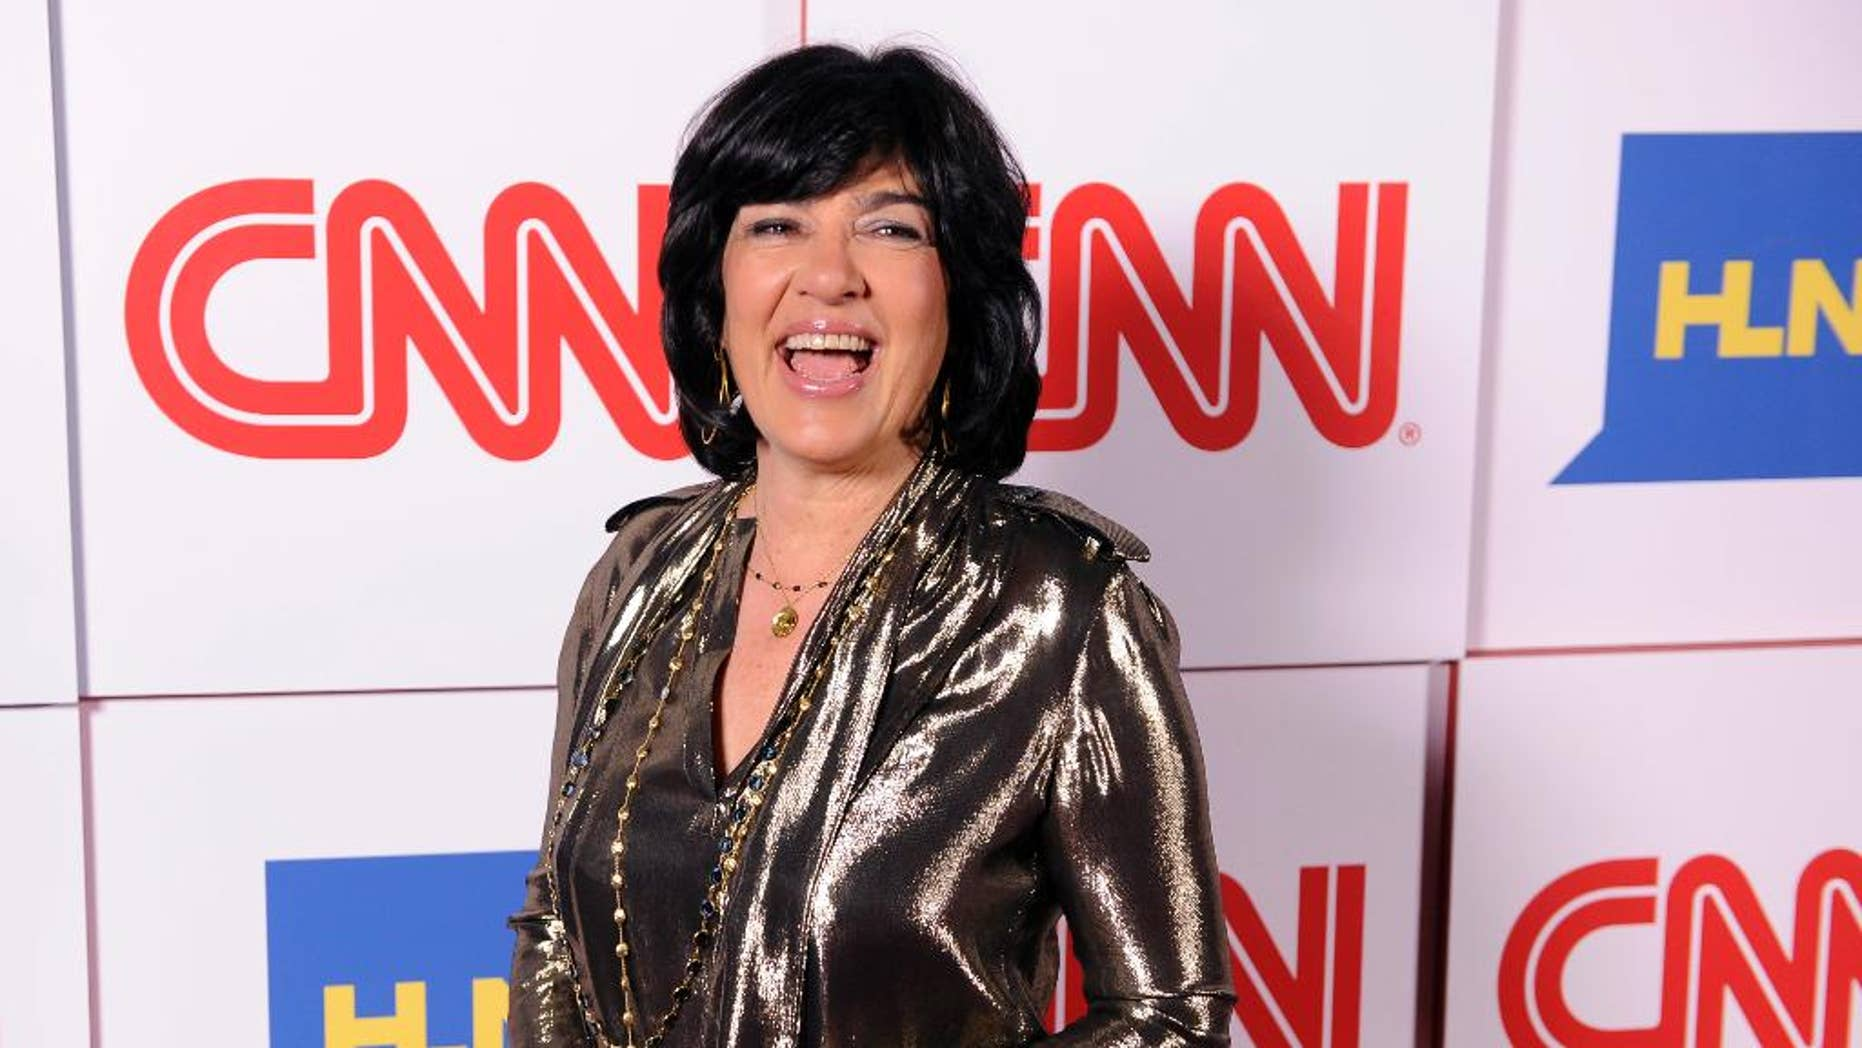 FILE- In this Jan. 10, 2014, file photo, Christiane Amanpour of CNN reacts to photographers at the CNN Worldwide All-Star Party in Pasadena, Calif. Amanpour, who is CNN's chief international correspondent, is scheduled to speak Friday, May 5, 2017, at Northeastern's graduation ceremony at TD Garden arena in Boston. (Photo by Chris Pizzello/Invision/AP, File)